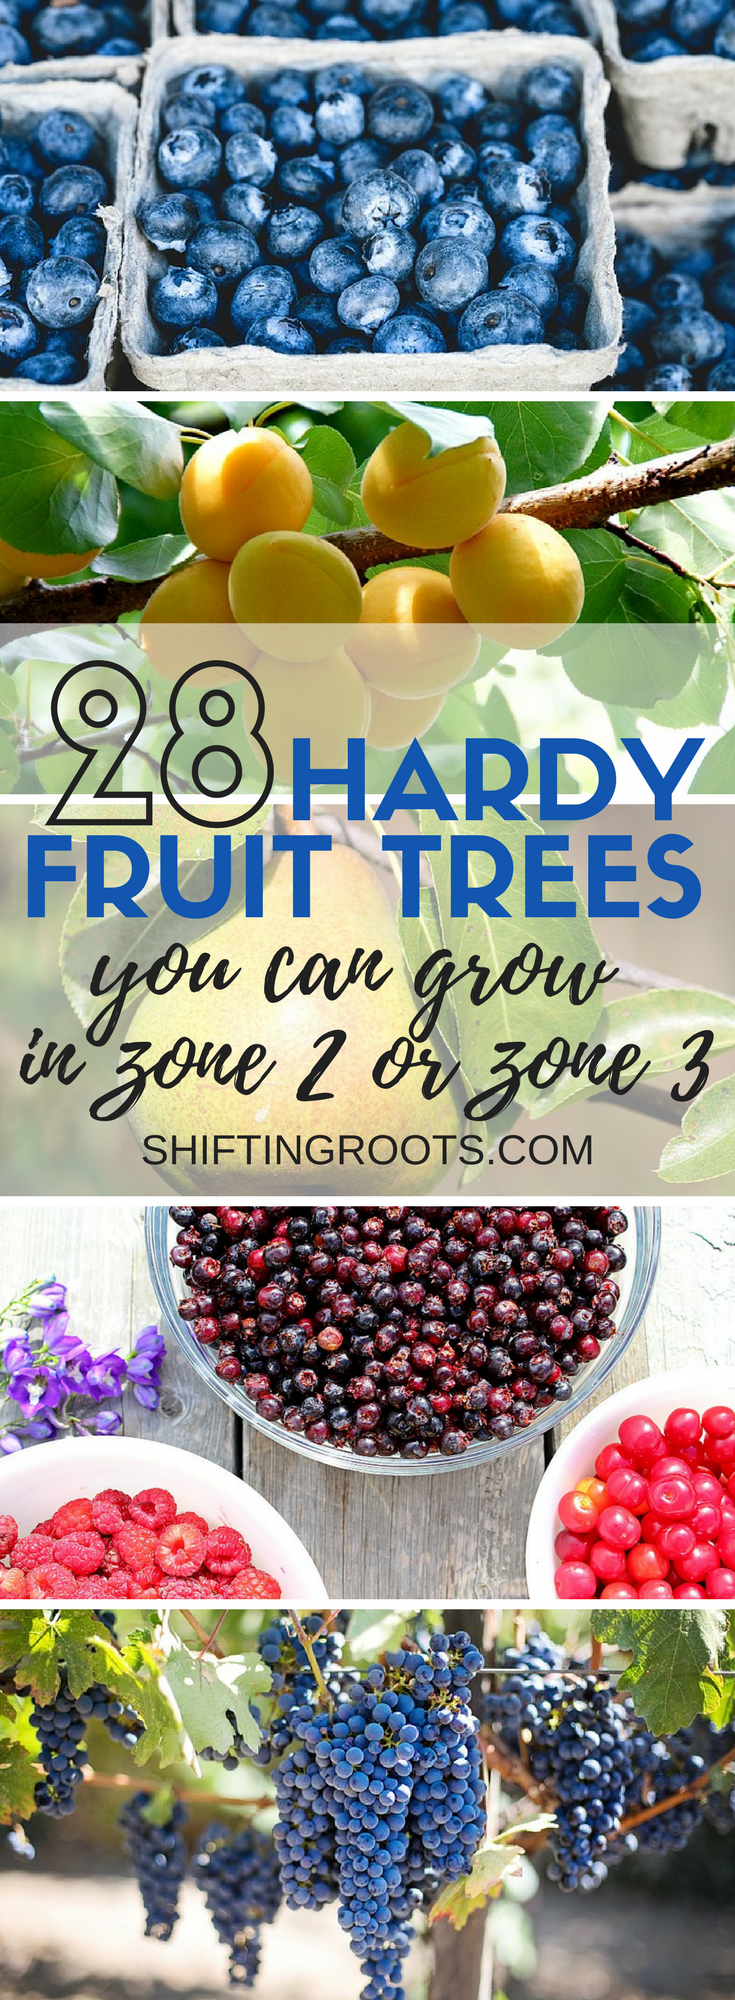 Want to plant hardy fruit trees in zone 2 or zone 3?  I've got 28 hardy fruits you can grow that are perfect for the cold climate backyard, garden, or landscape.  I've included lots of suggestions for my favourite varieties of apples, sour cherries, pears, raspberries, blueberries, grapes, and so much more.  Perfect for gardens in Canada! #gardening #fruittrees #hardyfruittrees #zone2 #zone3 #growfruit #fruitgrower #coldclimategardening #gardeninginCanada